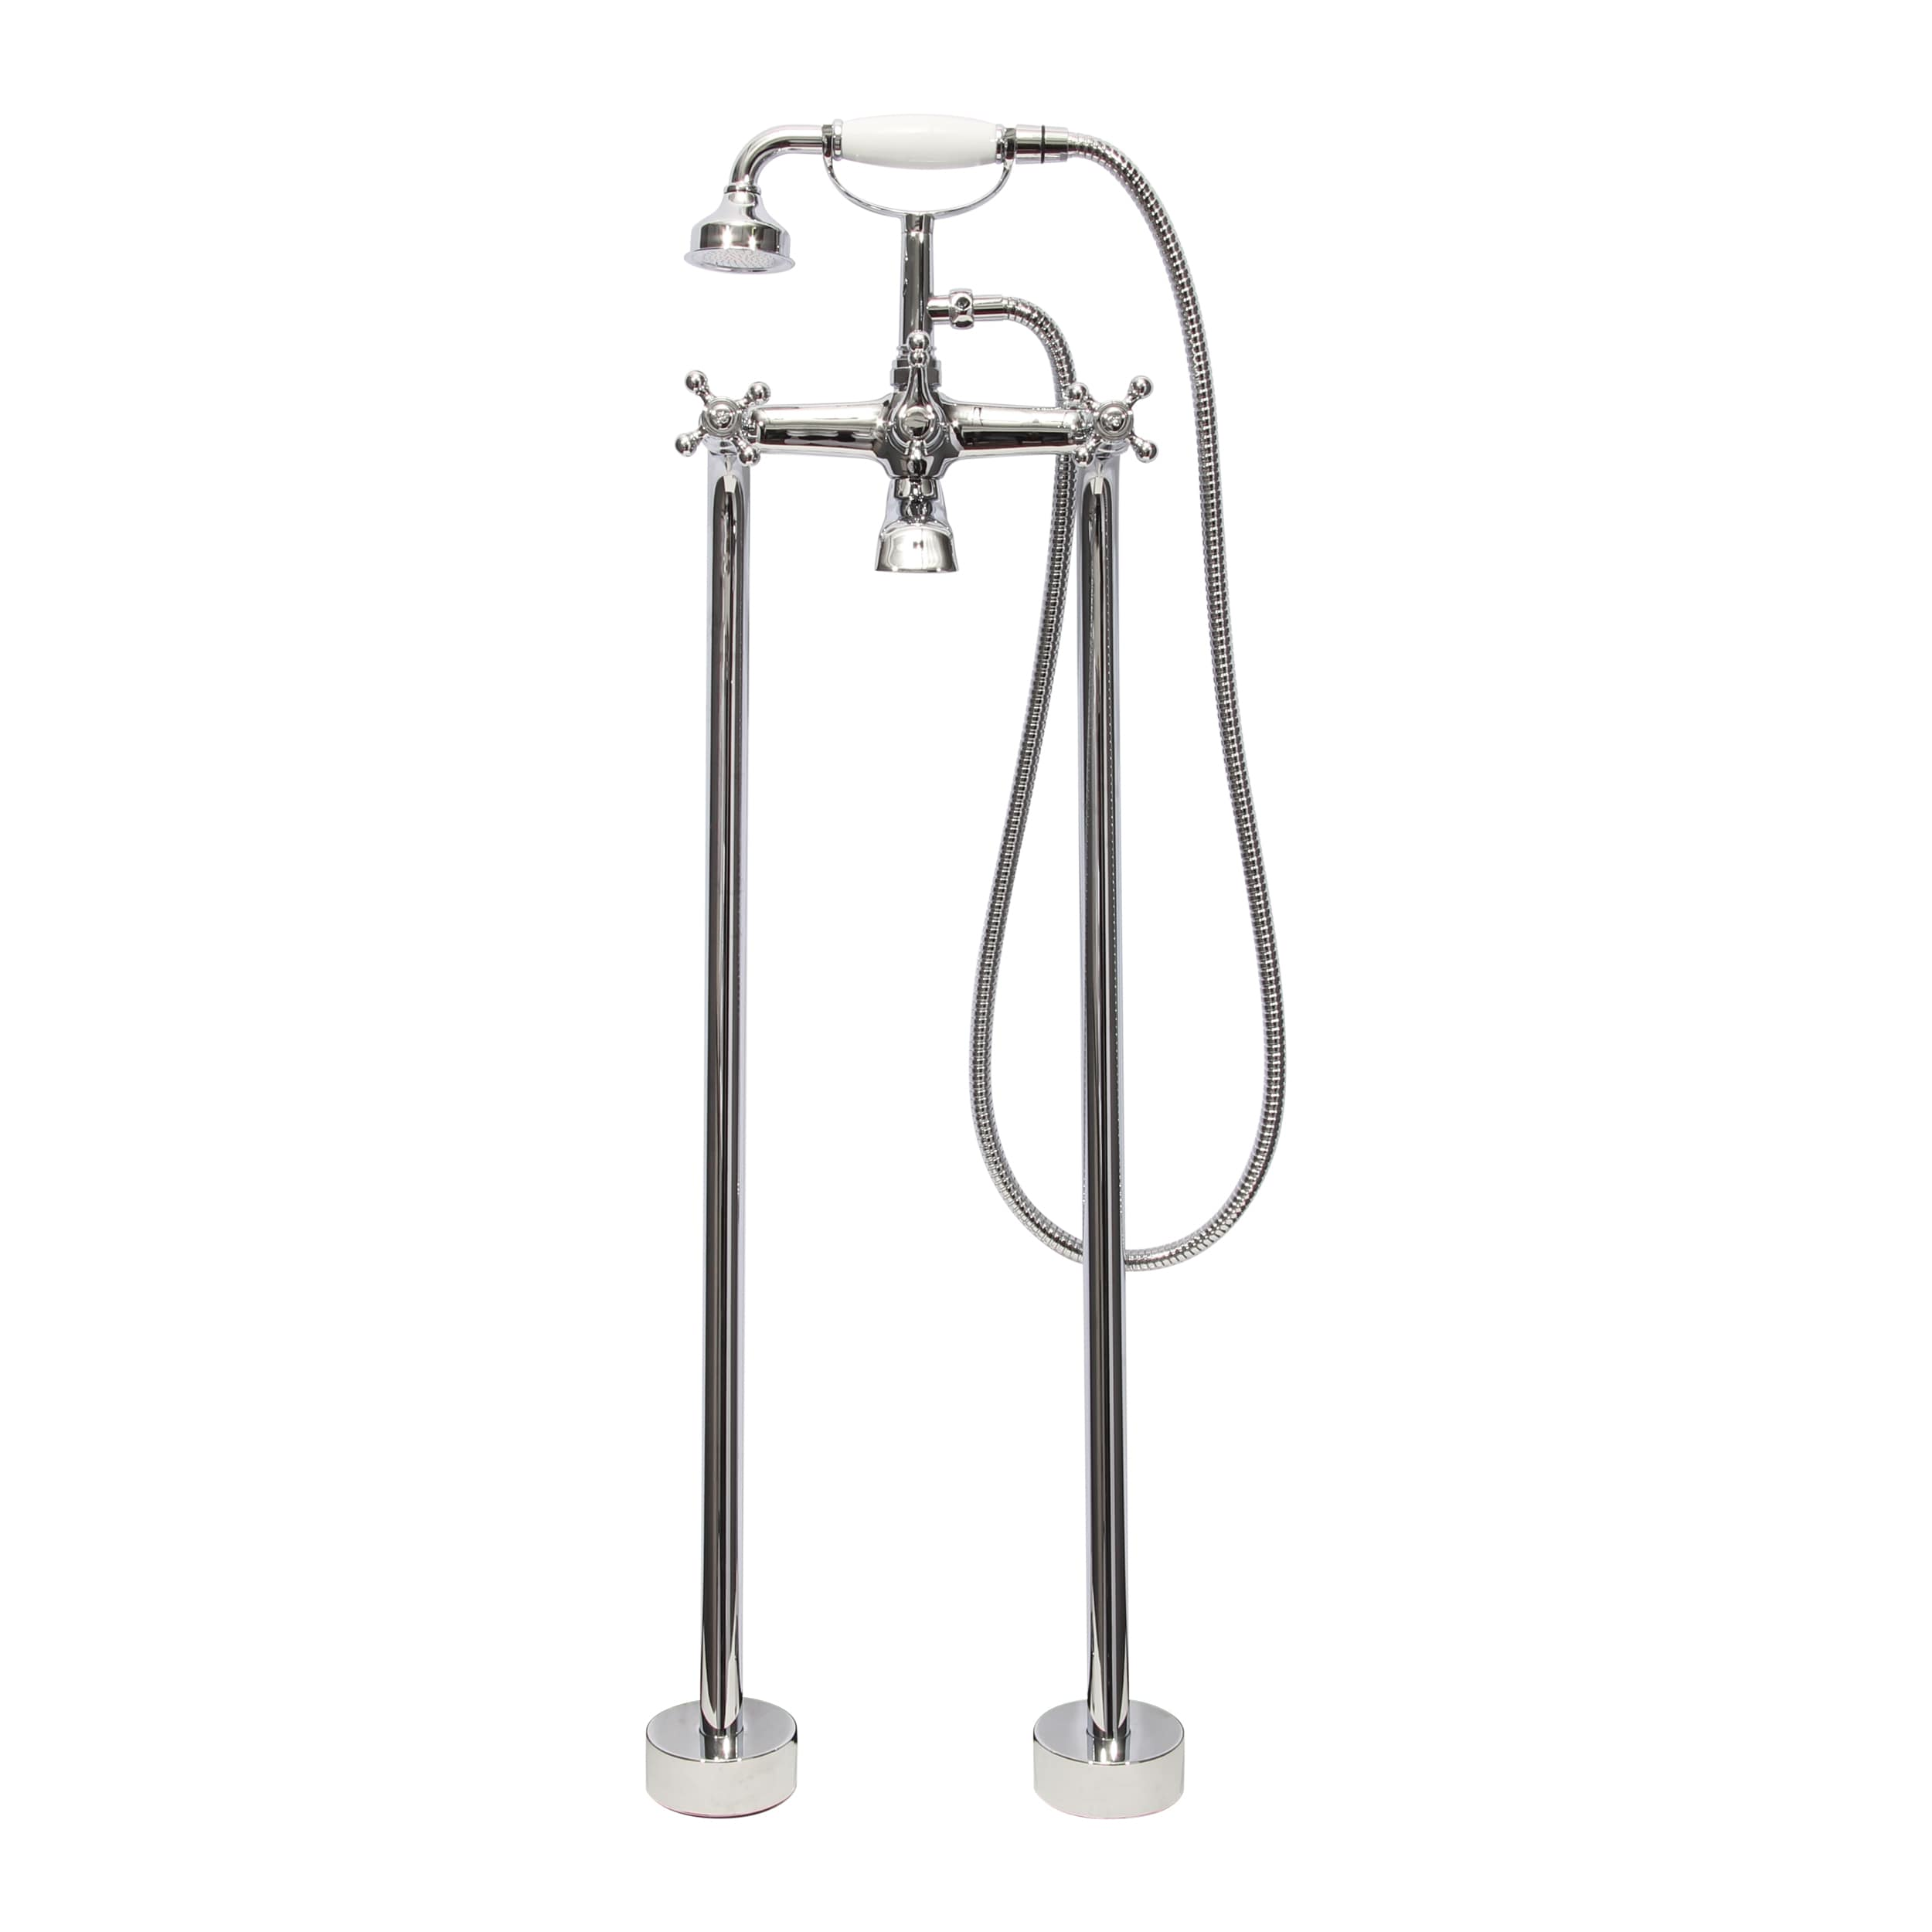 Shop Dyconn Faucet Free-standing Bathtub Filler Faucet with Hand ...